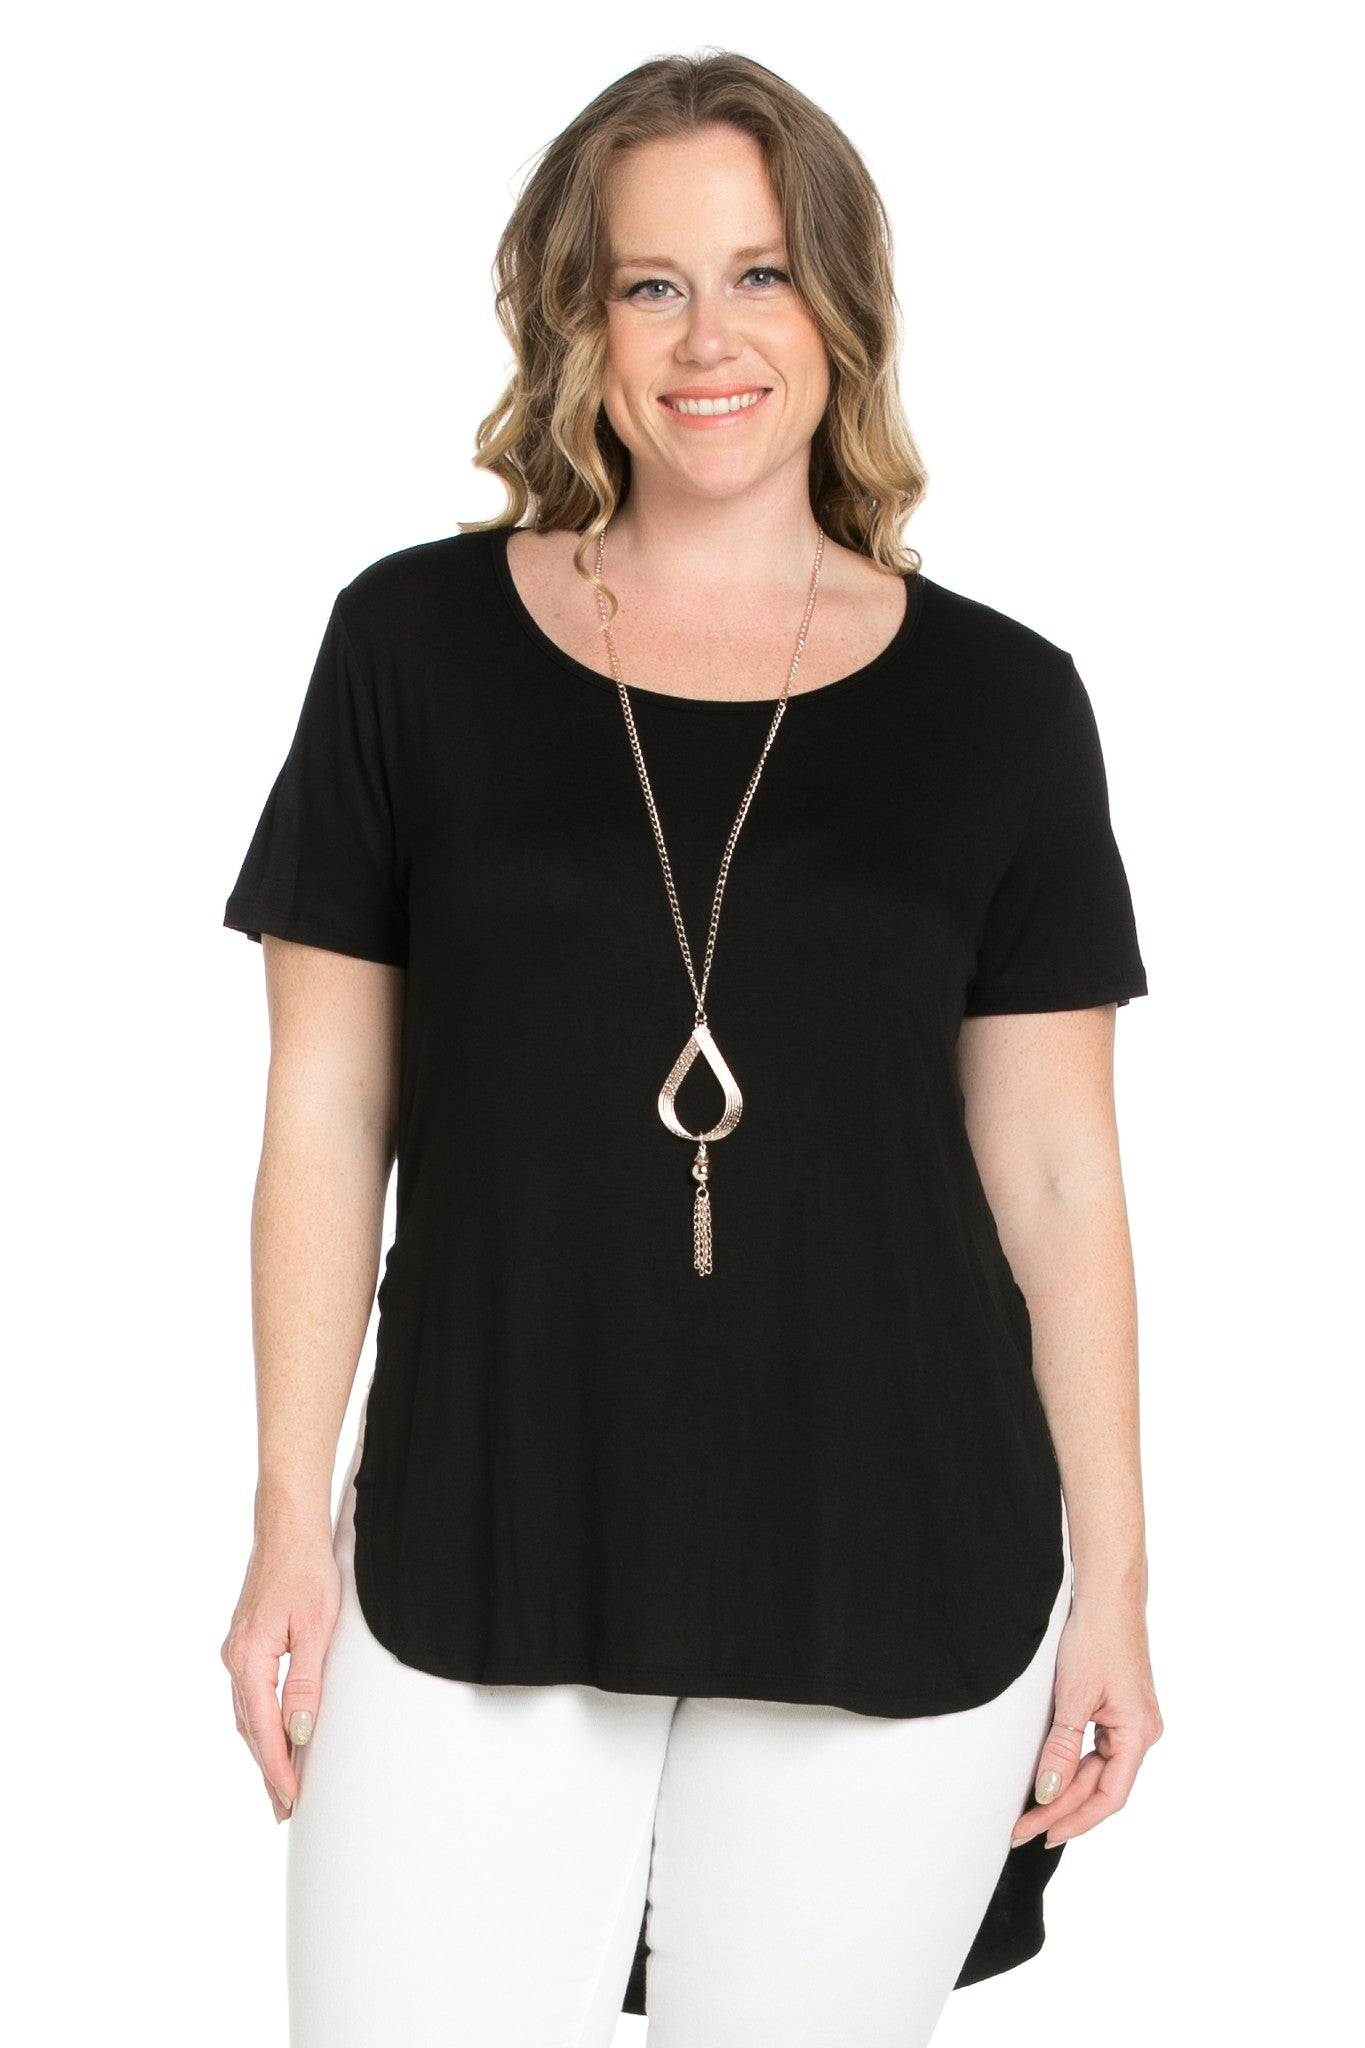 Black Plus Size High-low Scoop Neck Shirt - Blouses - My Yuccie - 6